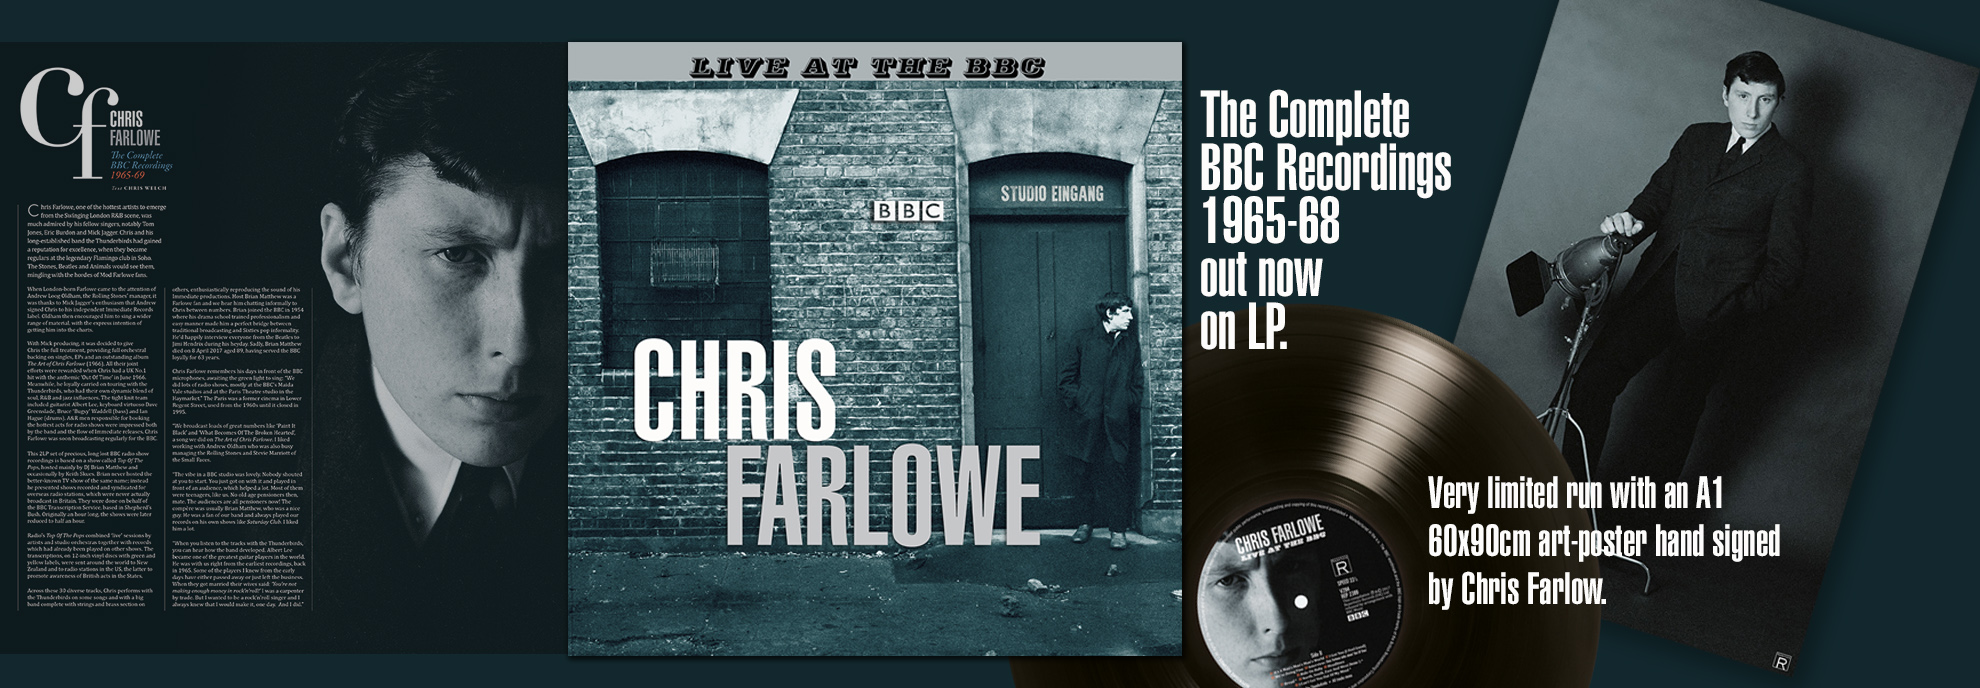 Chis-Farlowe-lp-poster-banner-2